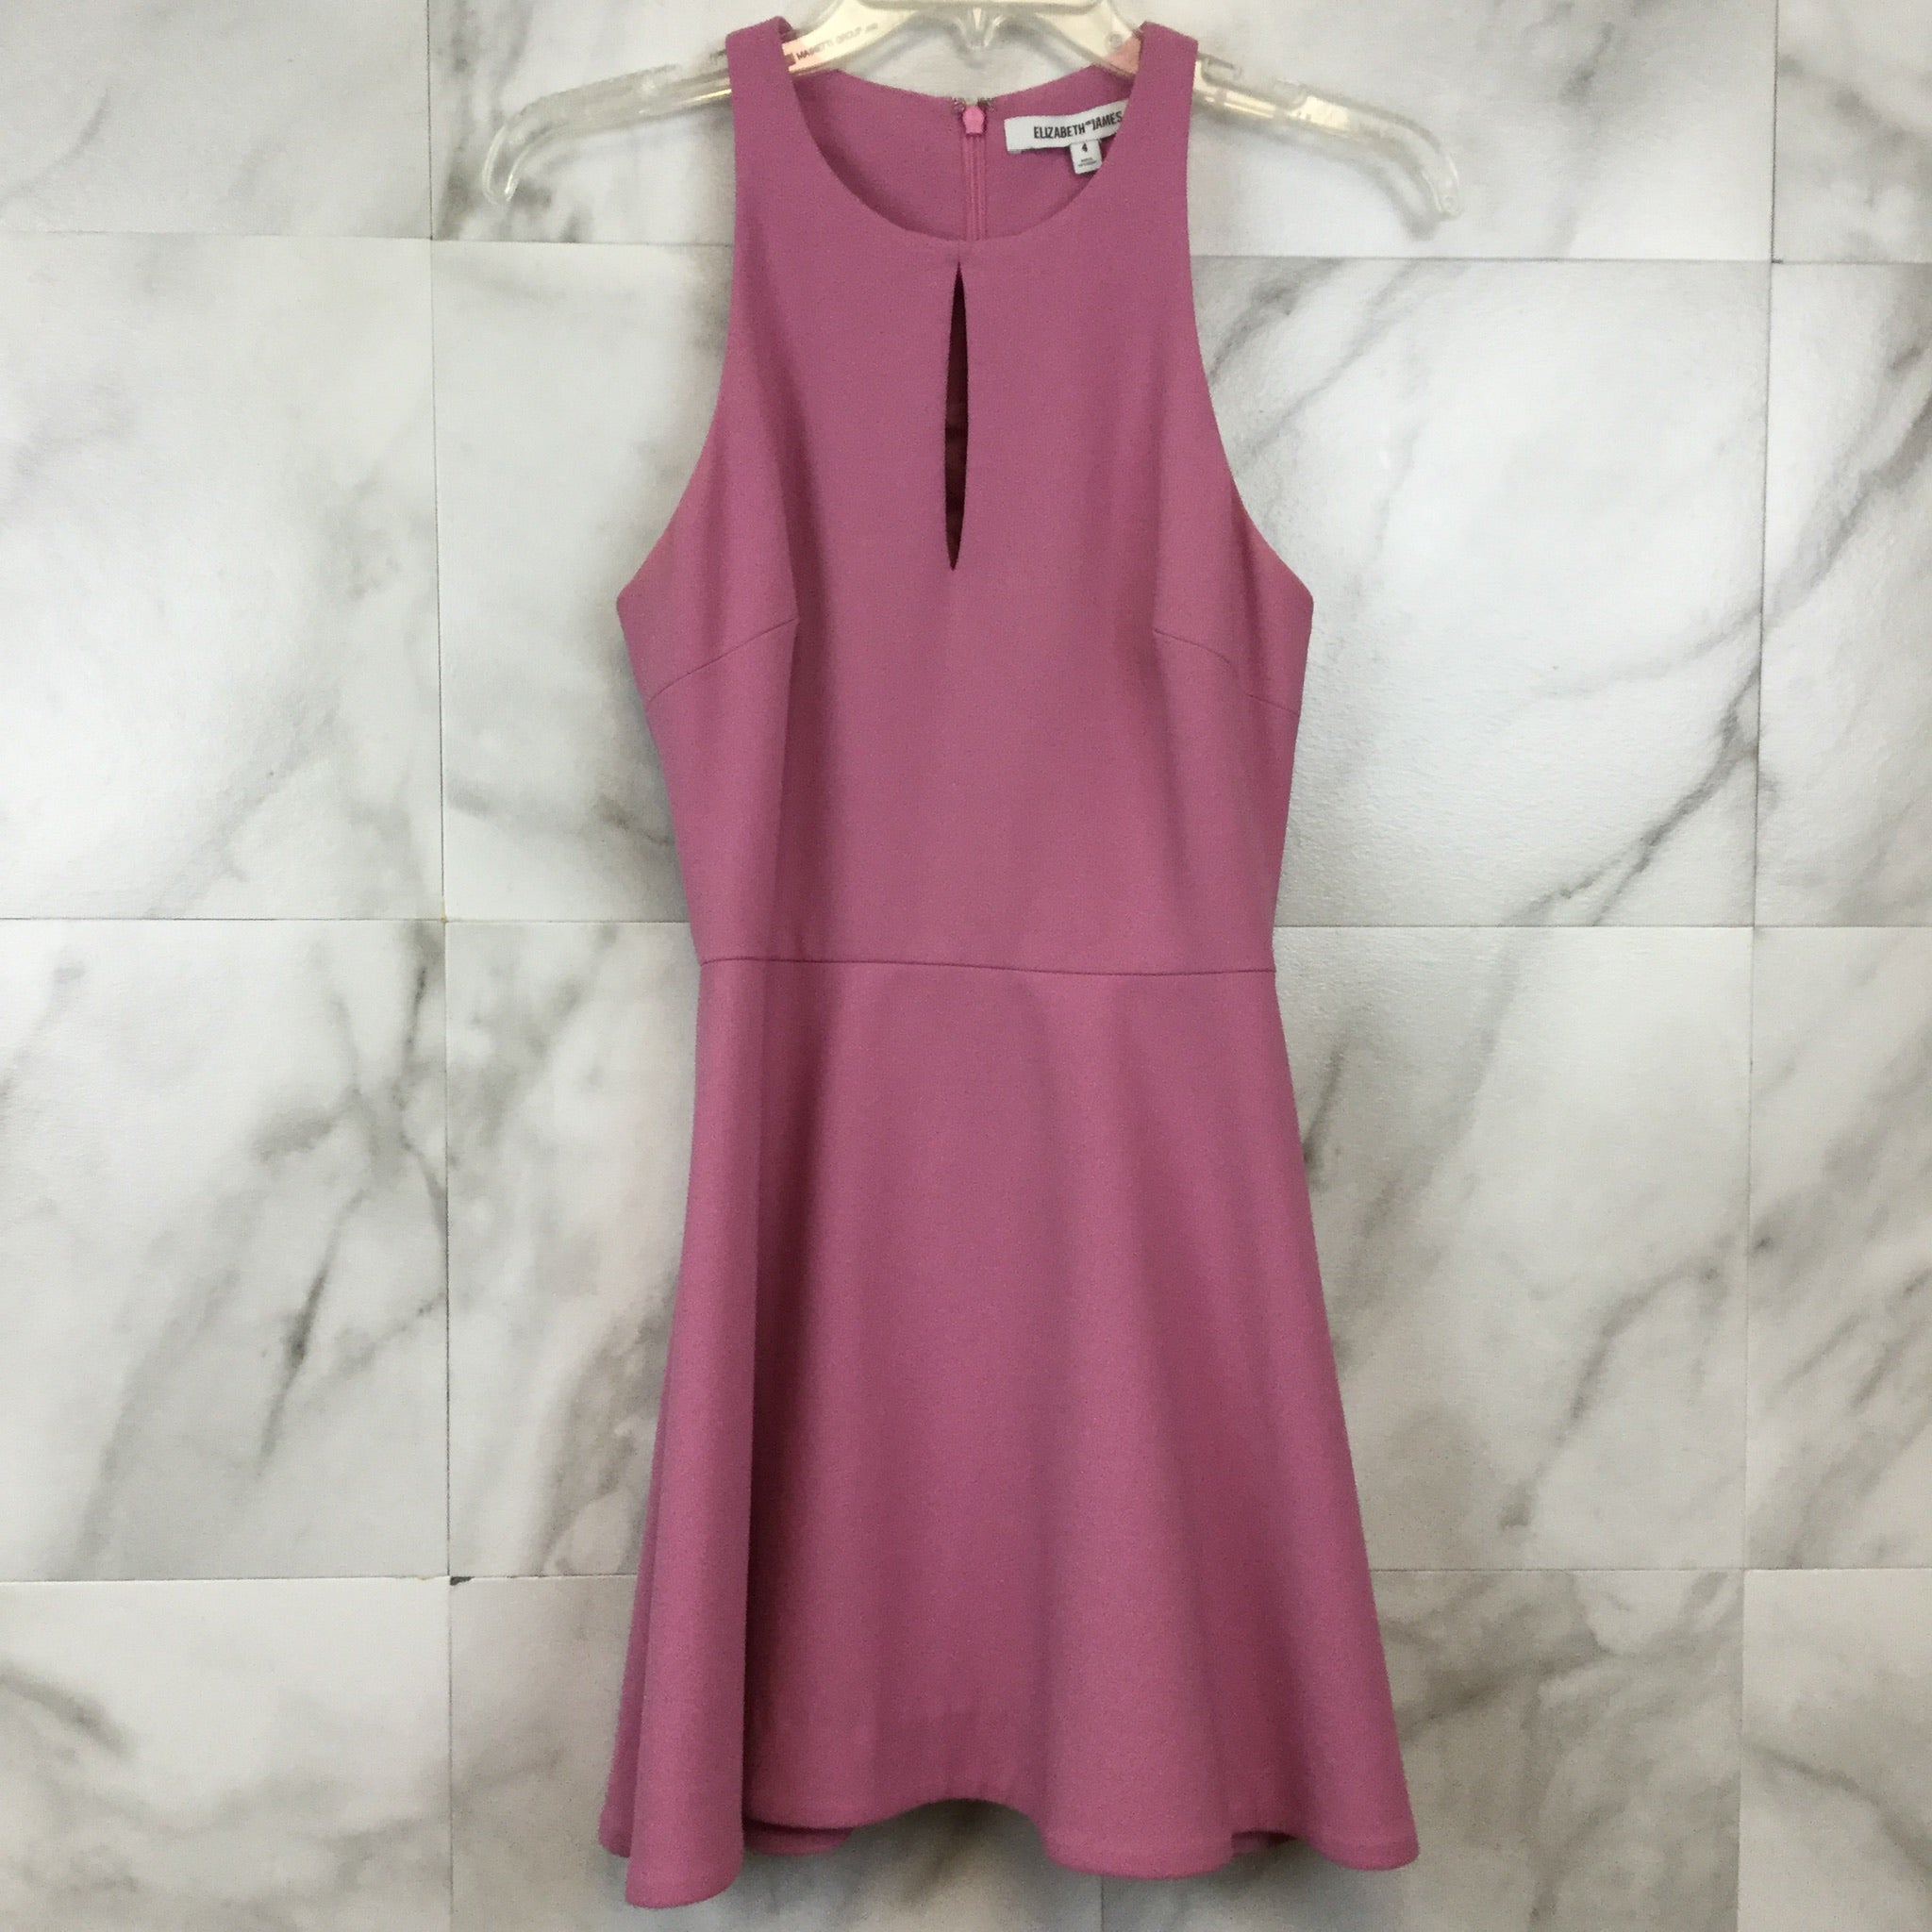 Elizabeth and James Scout Dress - size 4